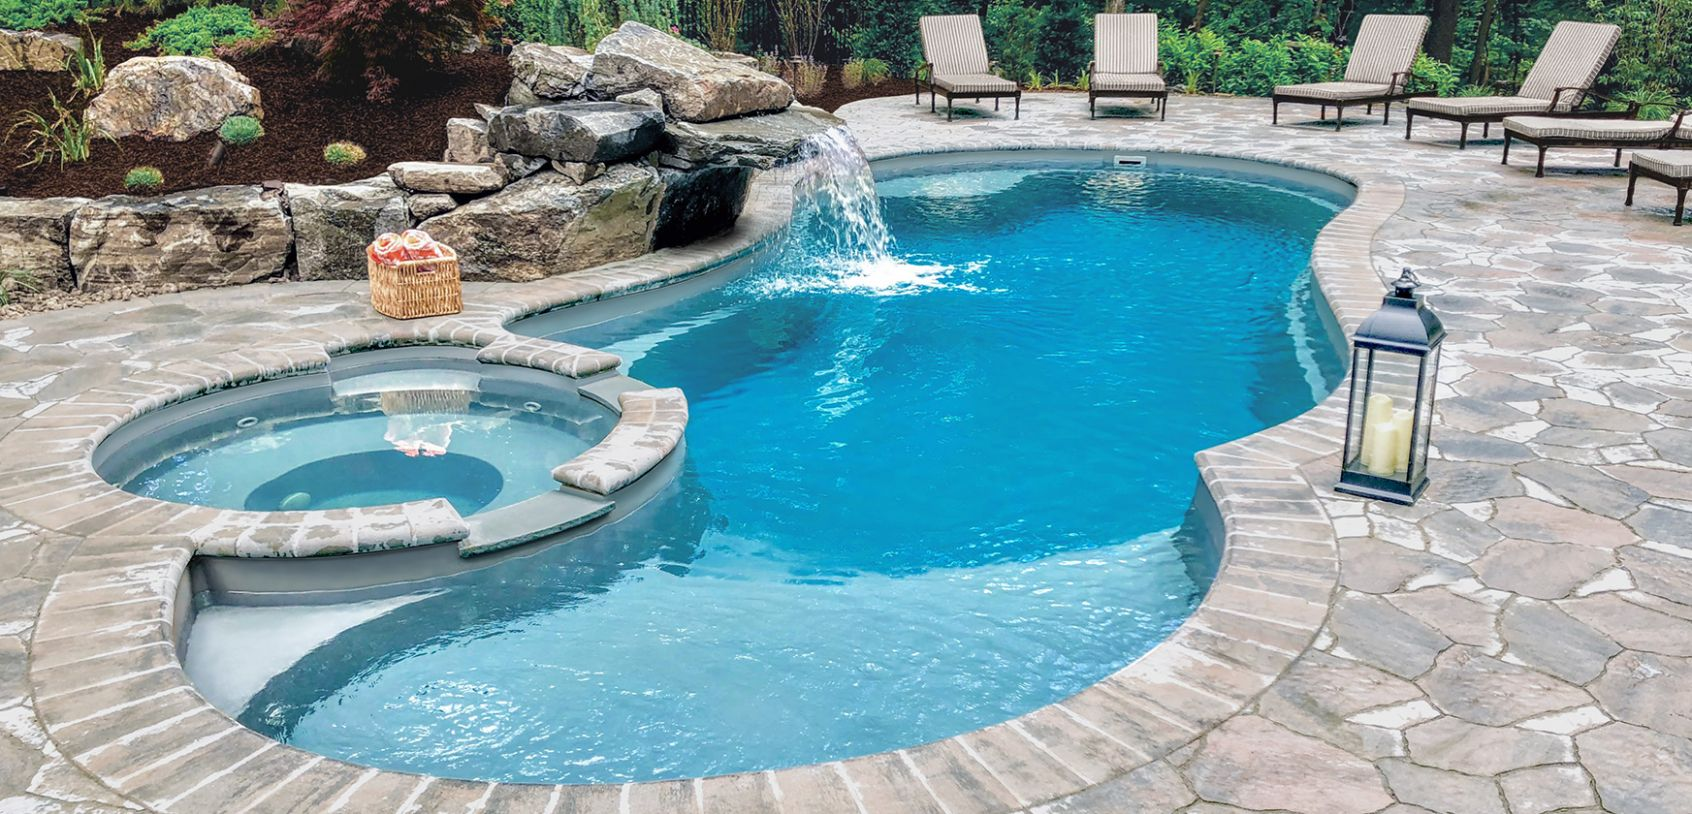 Why Pool Owners Love Having a Pool - pool ideas together